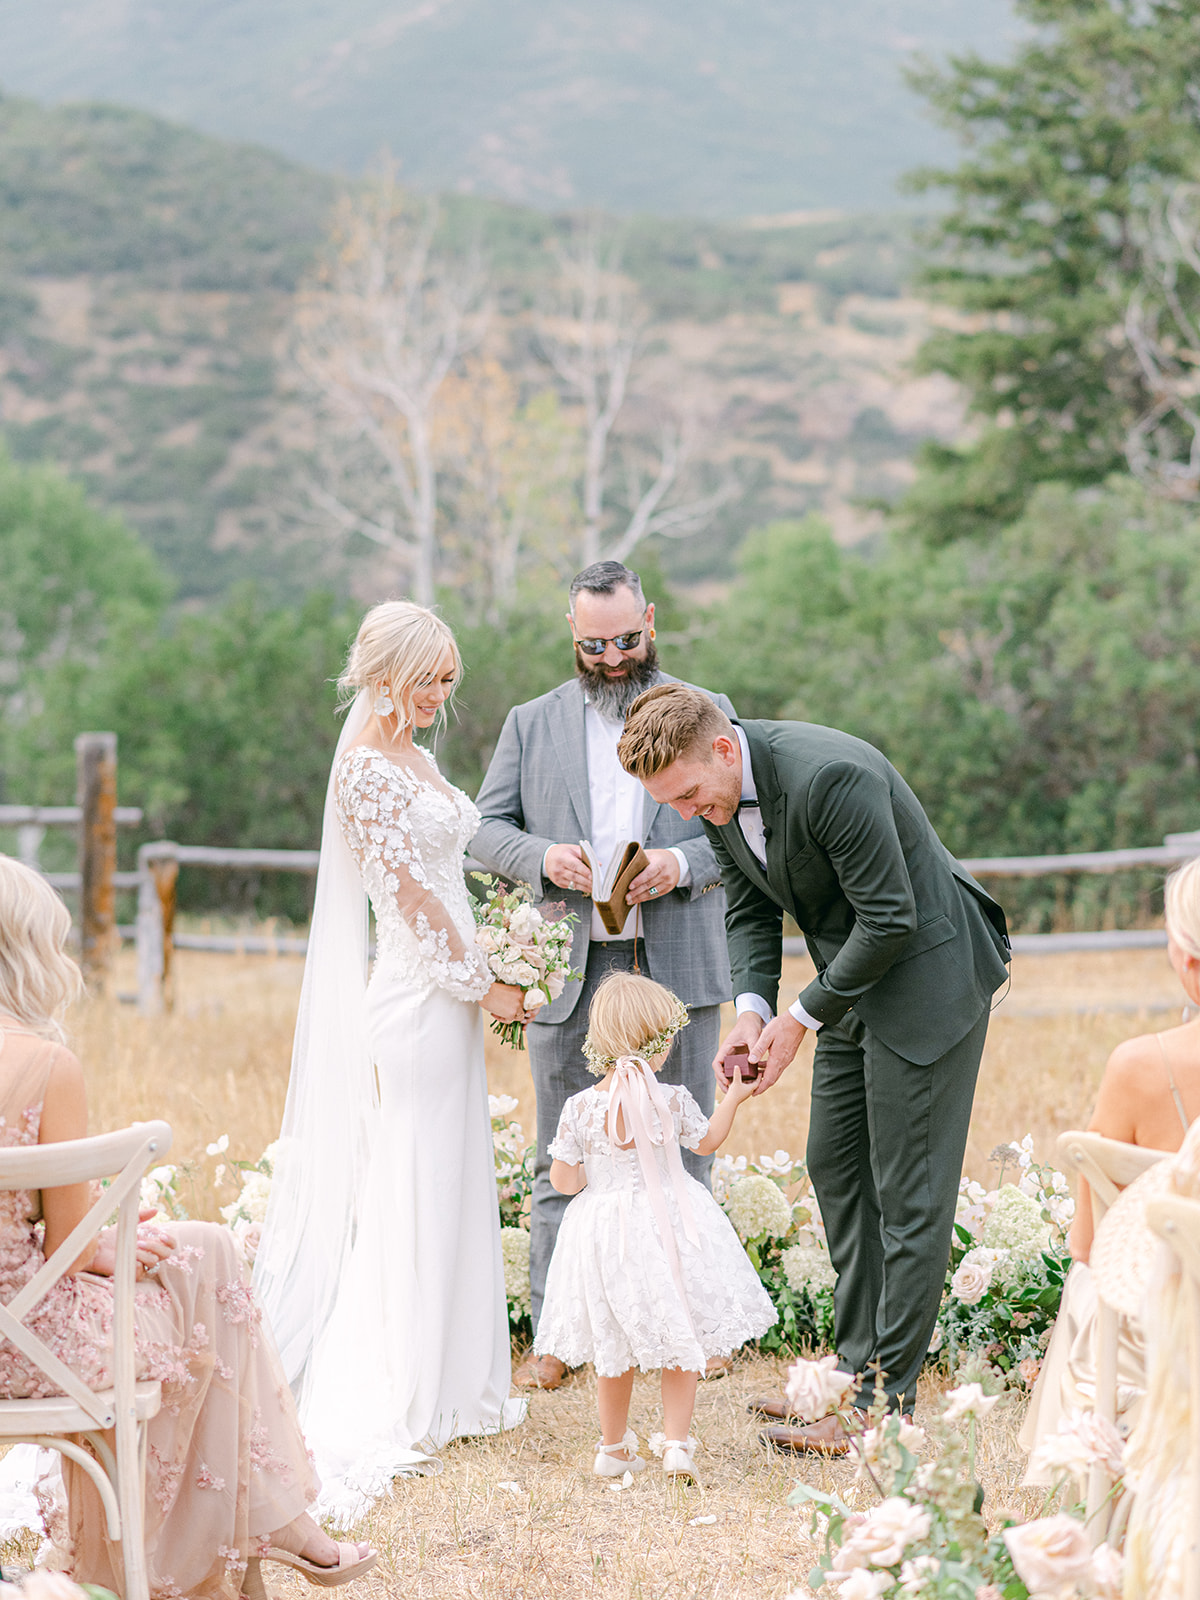 Little Daughter with Parents During Their Wedding Ceremony